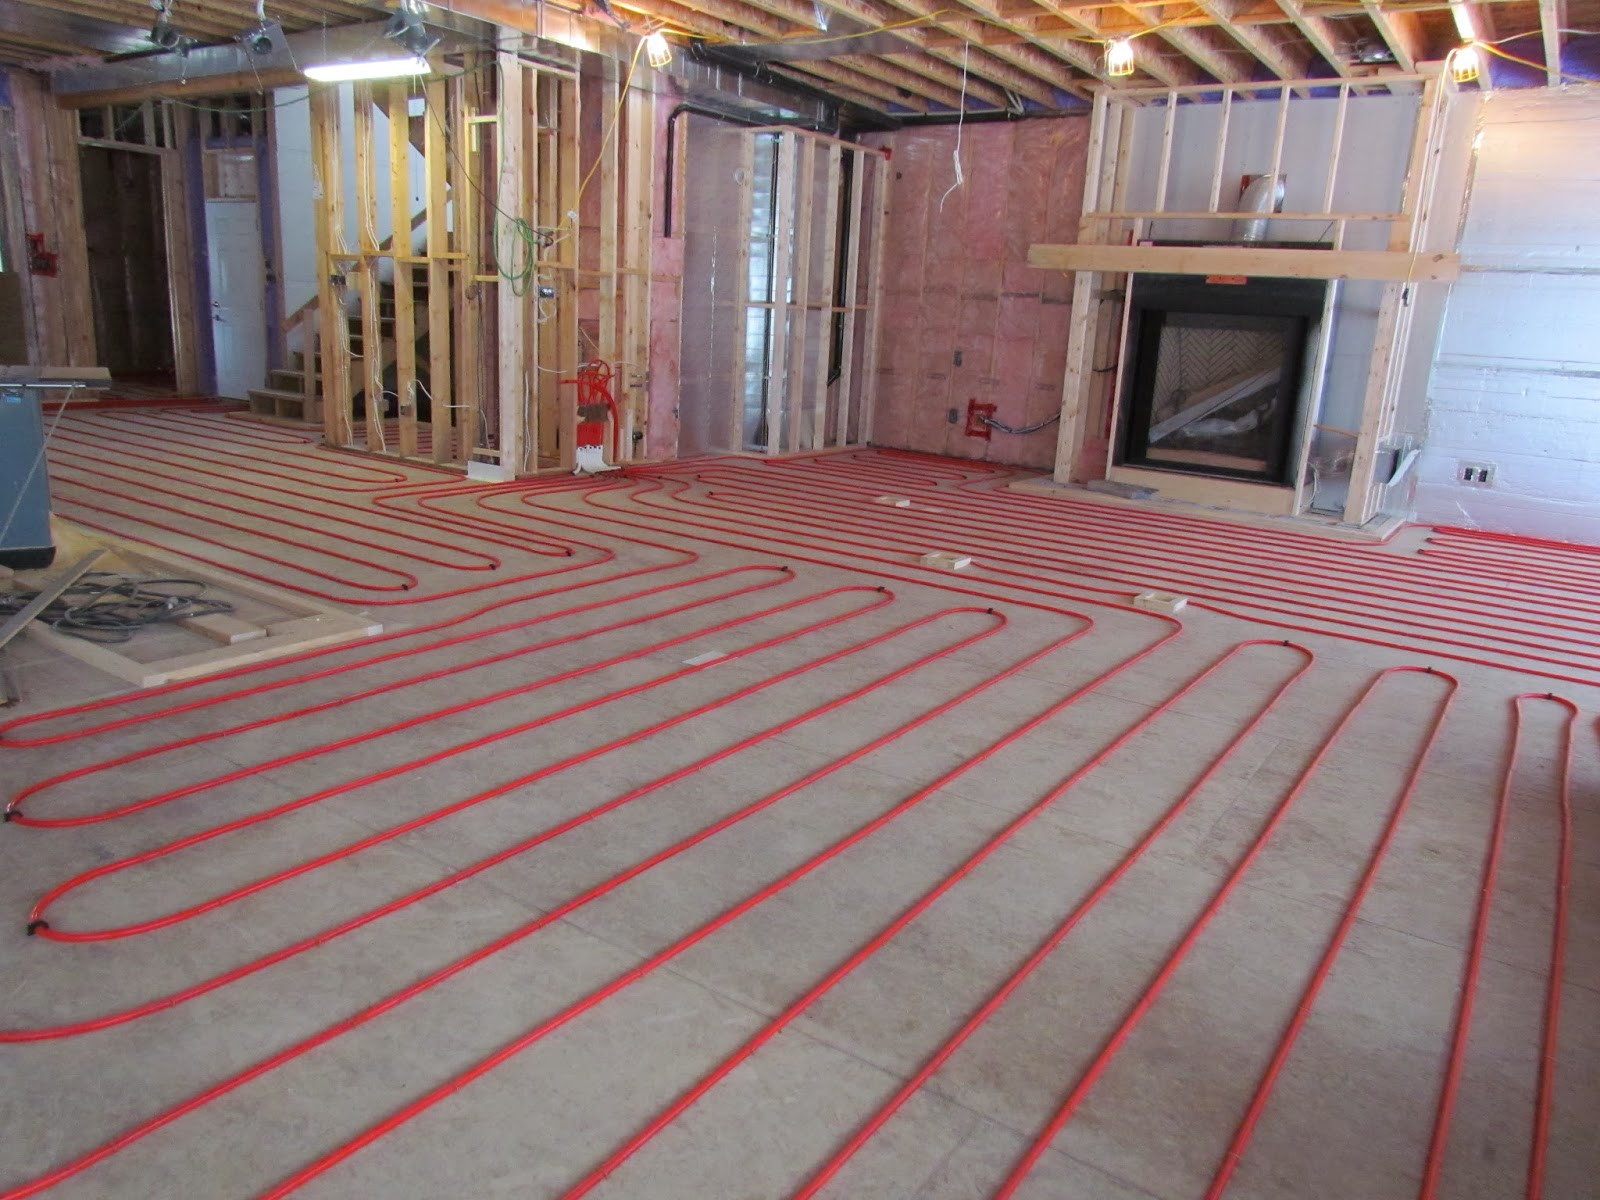 Best ideas about Radiant Floor Heating DIY . Save or Pin Pros and Cons of Radiant Heating for Your Home Now.